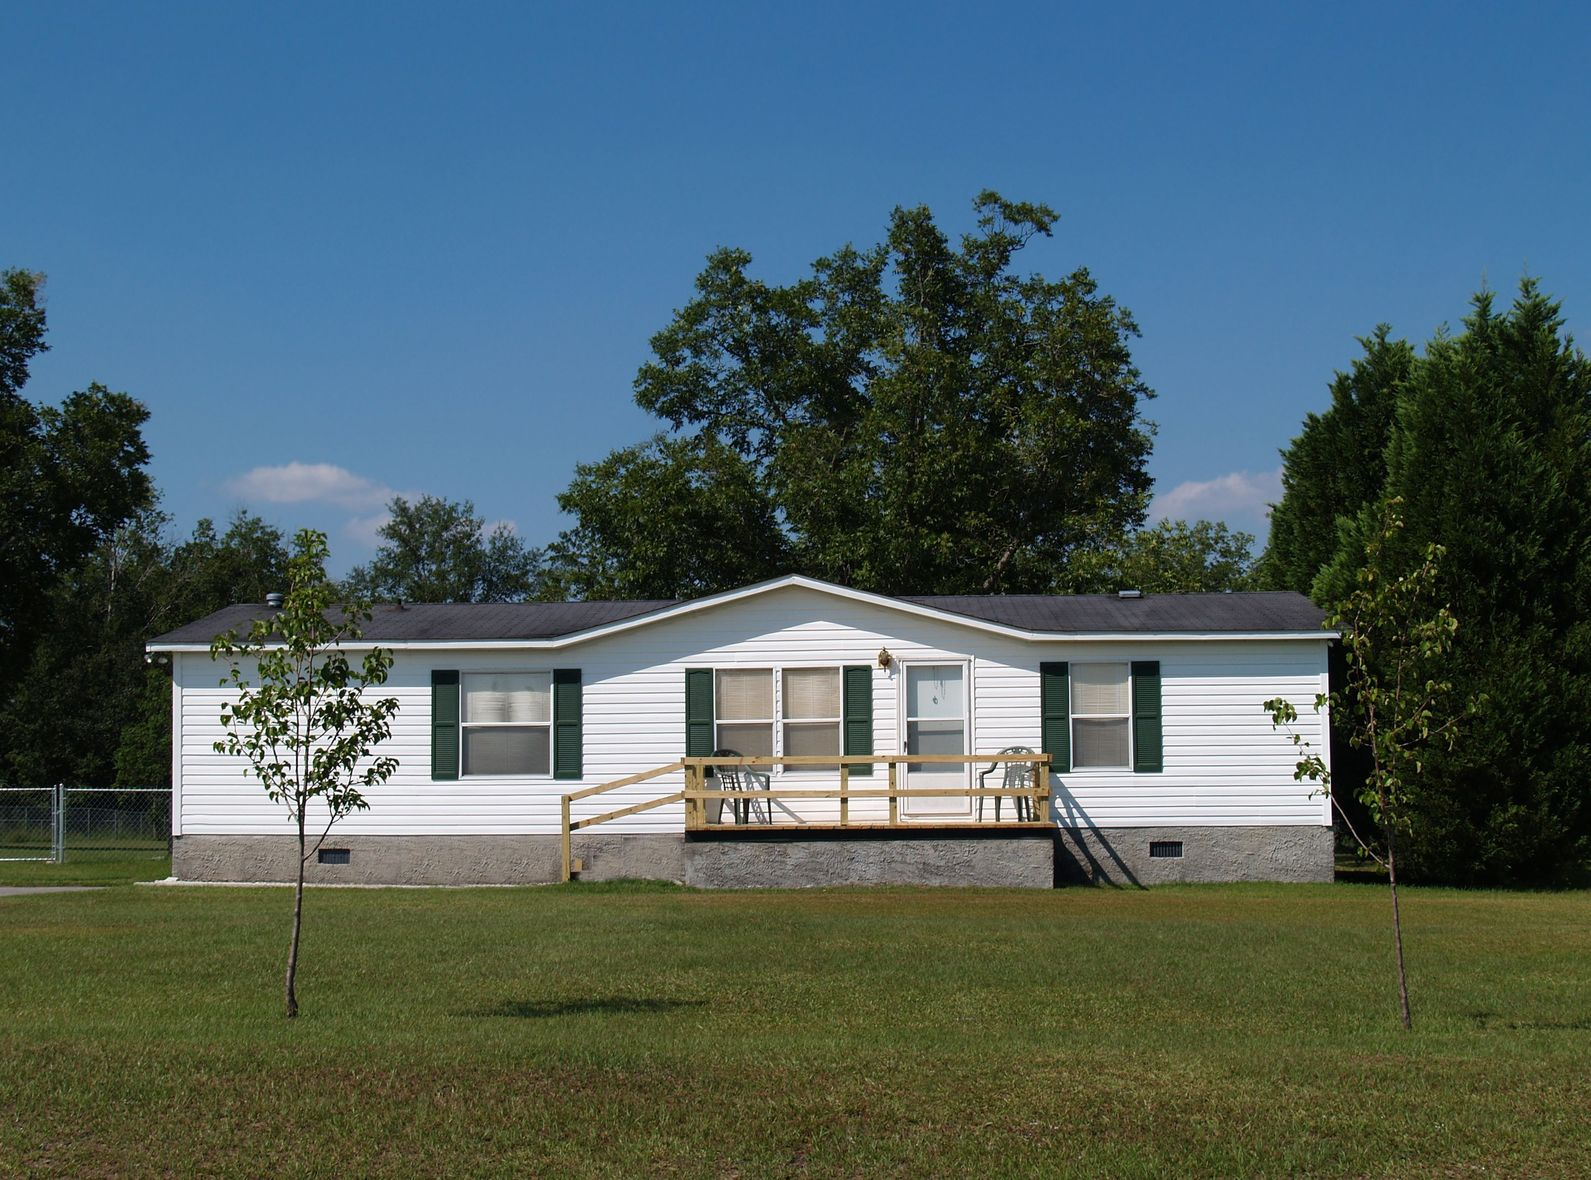 St Peters, Mo. Mobile Home Insurance